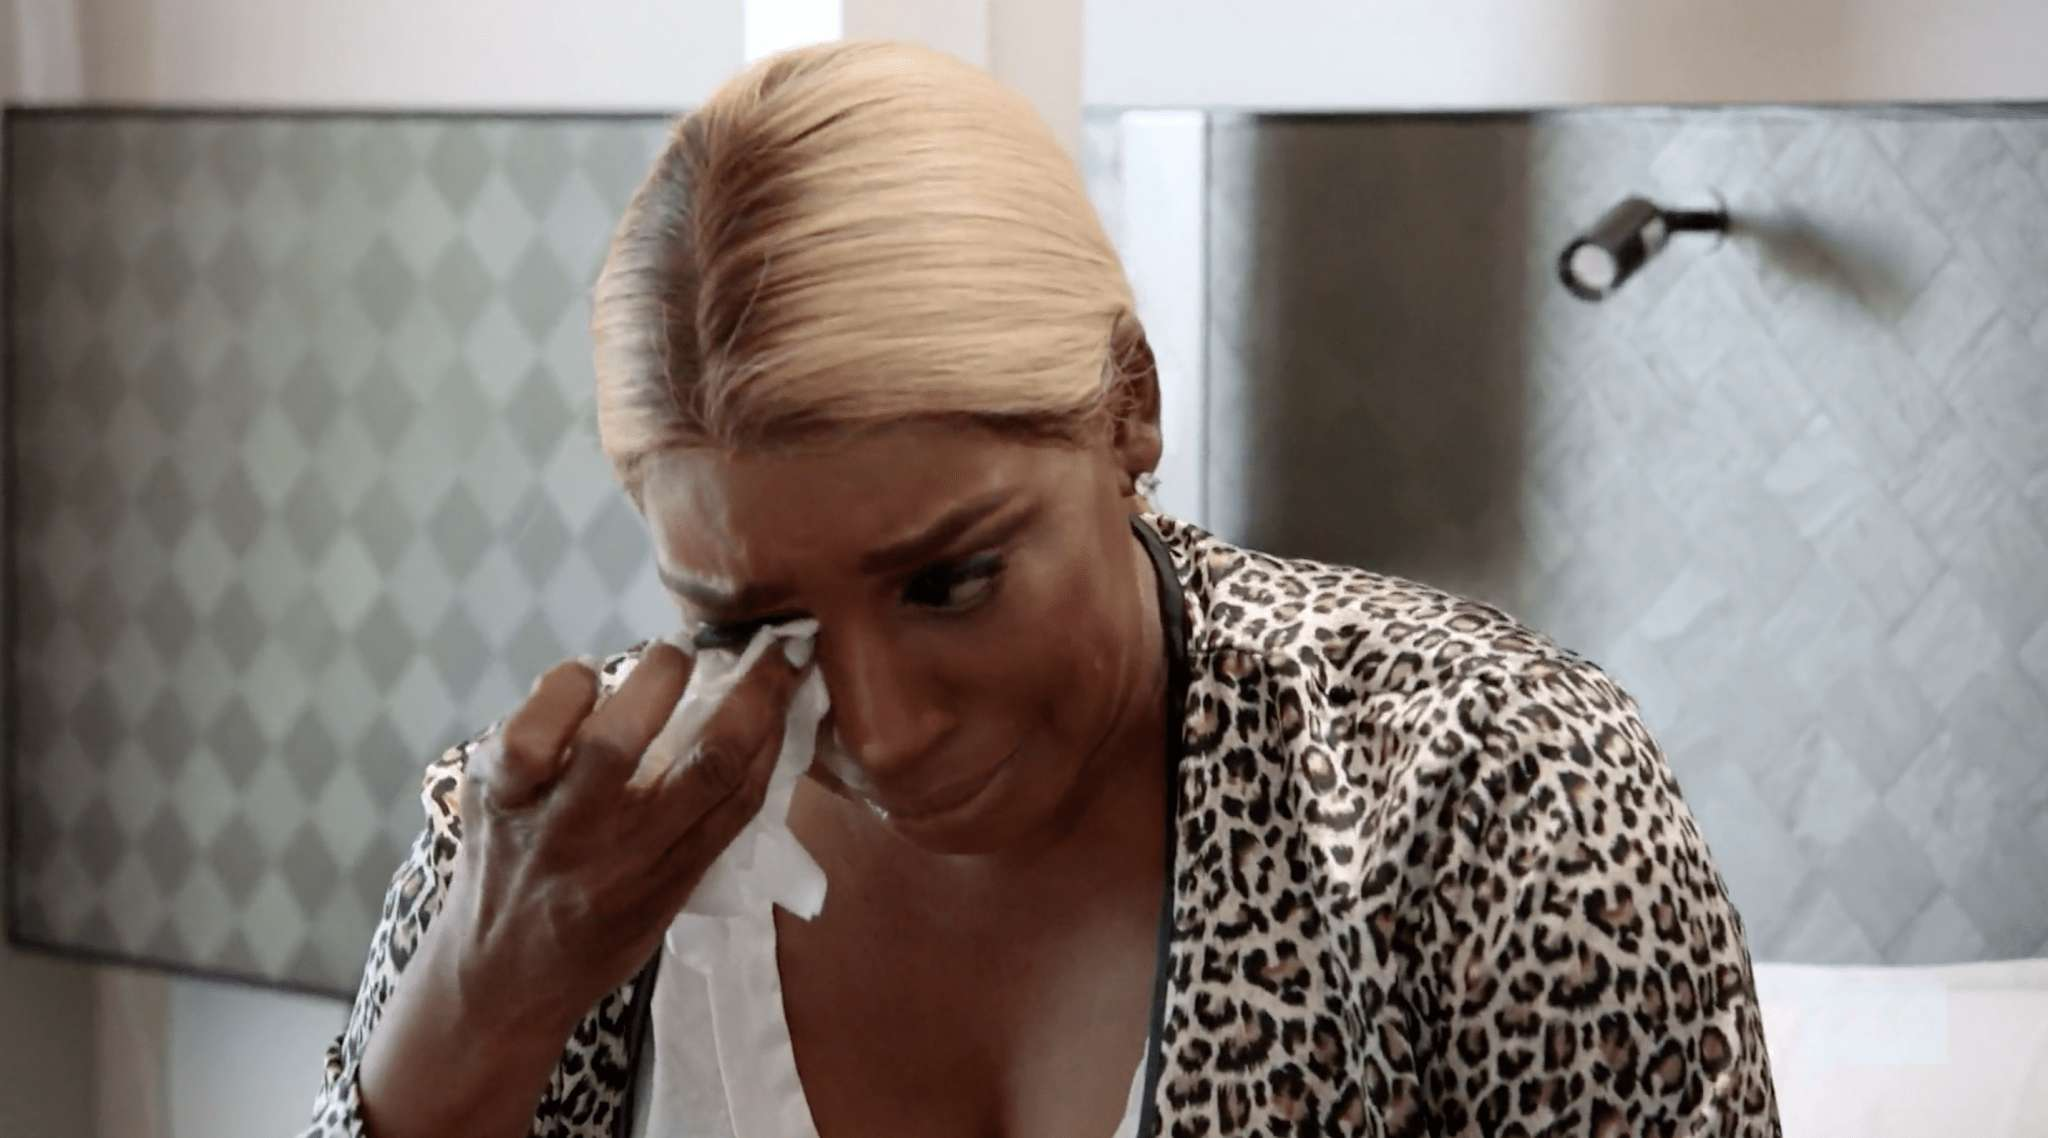 nene-leakes-disables-instagram-comments-after-being-slammed-hard-by-haters-diehard-fans-keep-supporting-her